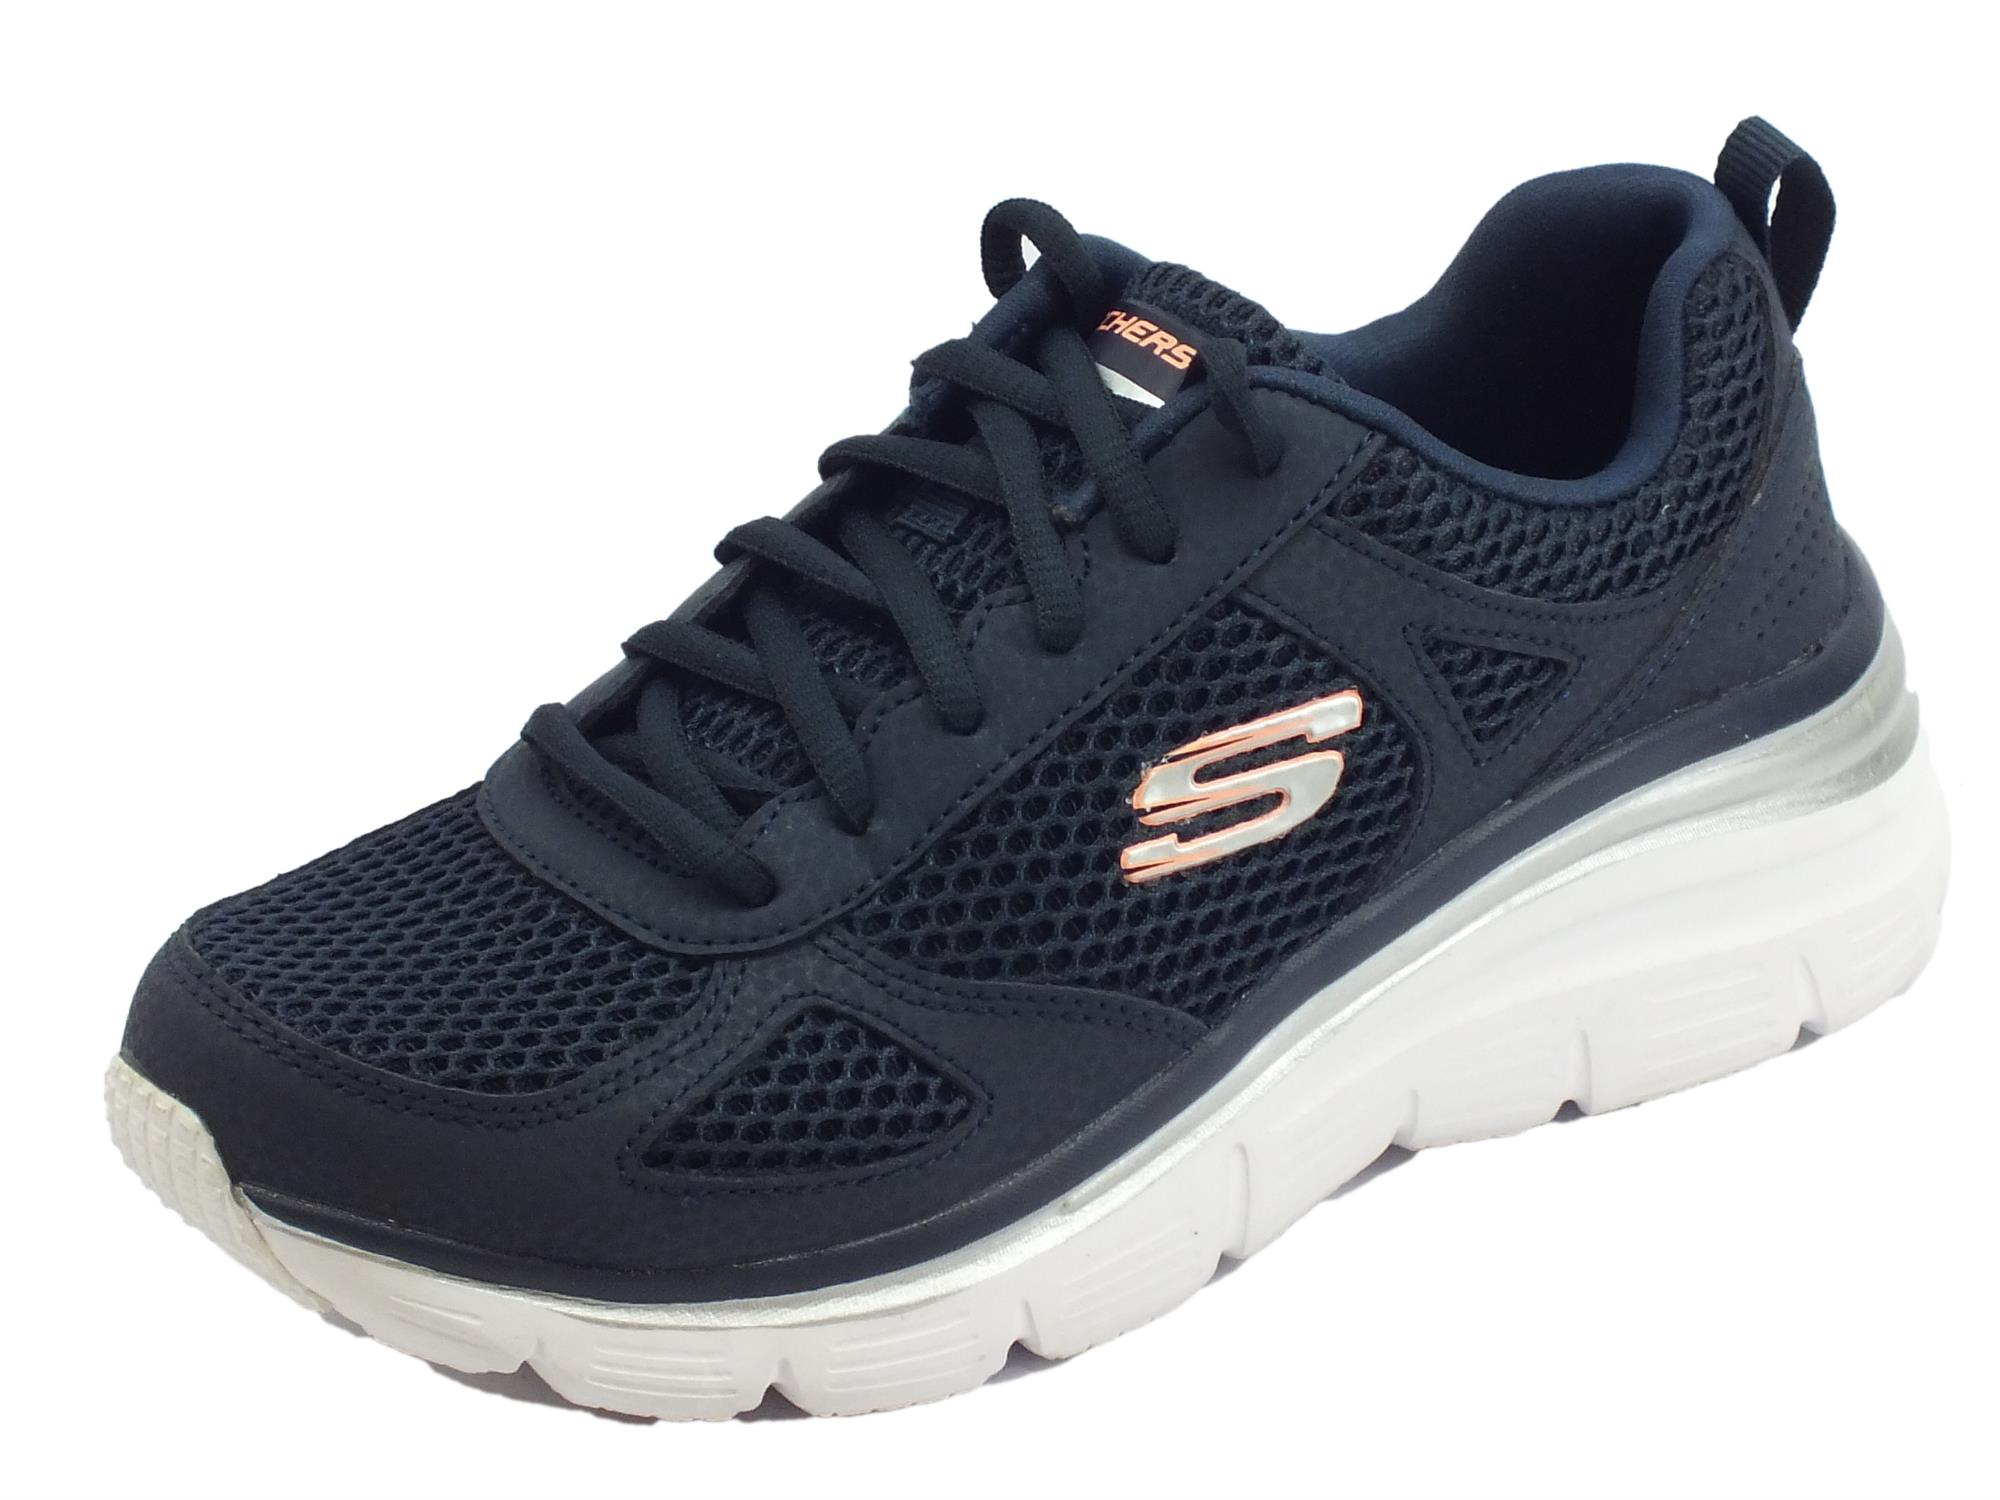 Skechers Fashion-fit Perfect Mate scarpe sportive per donna blu con memory  foam